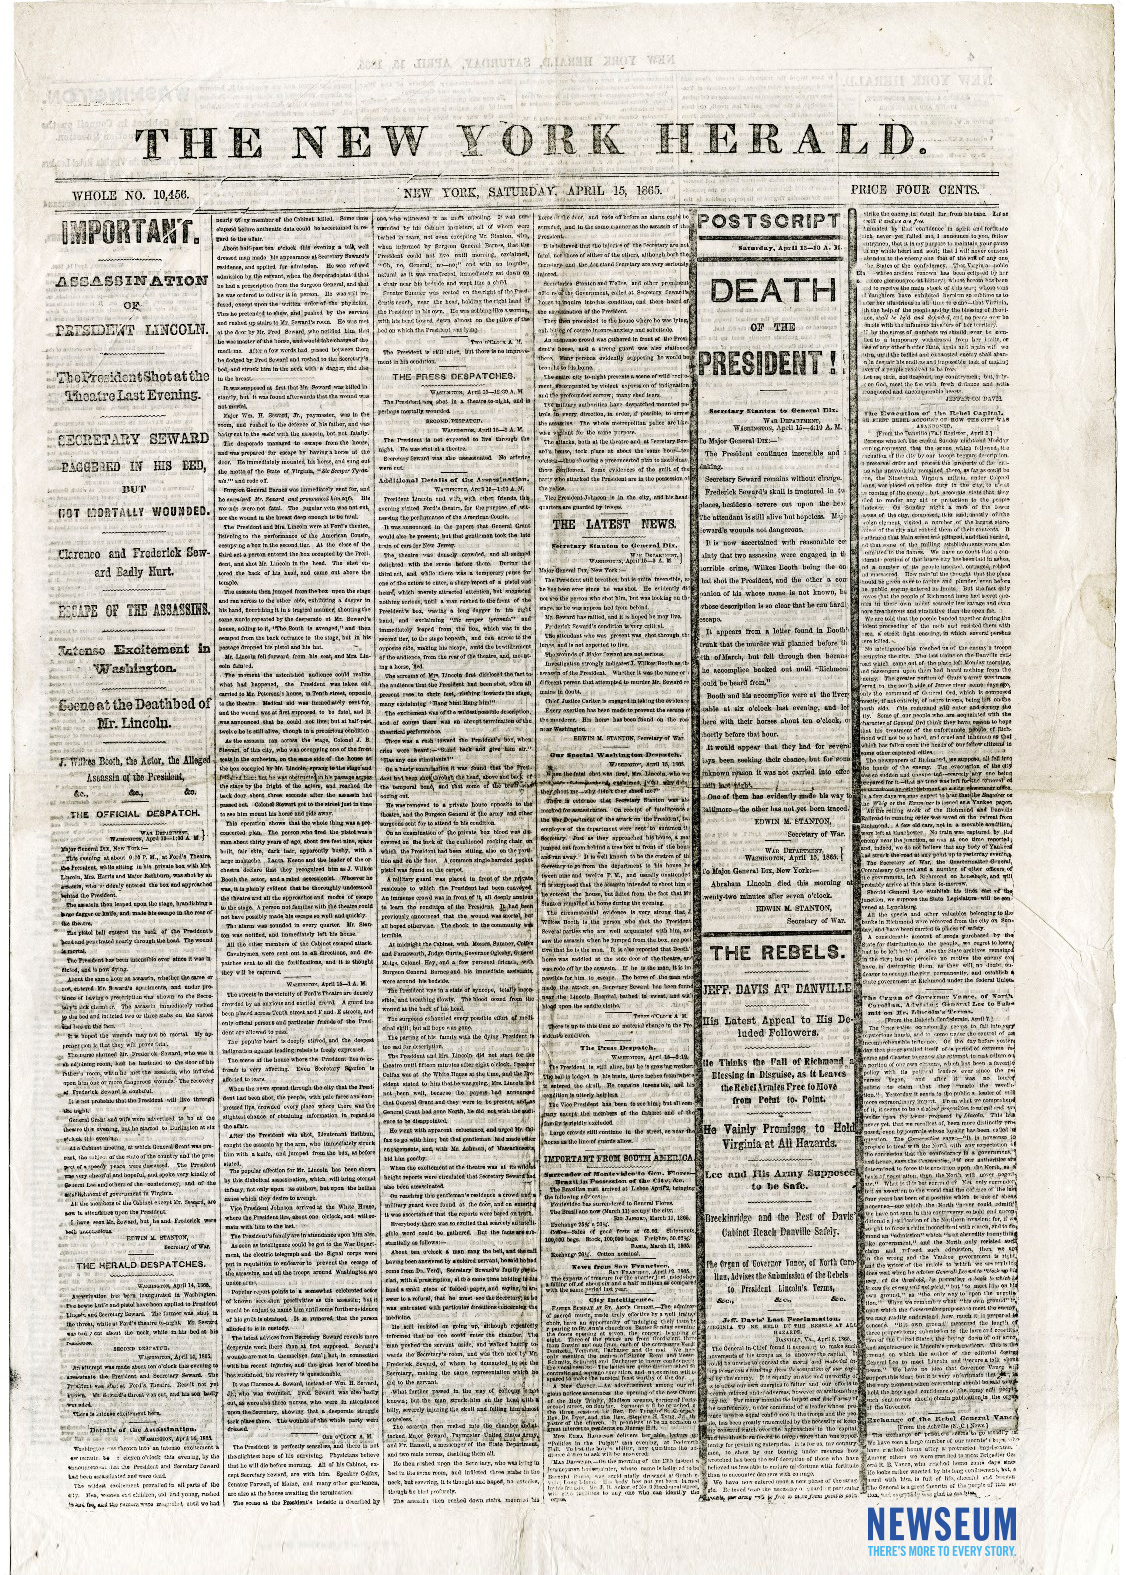 Image of the front page of the April 15 1865 New York Herald